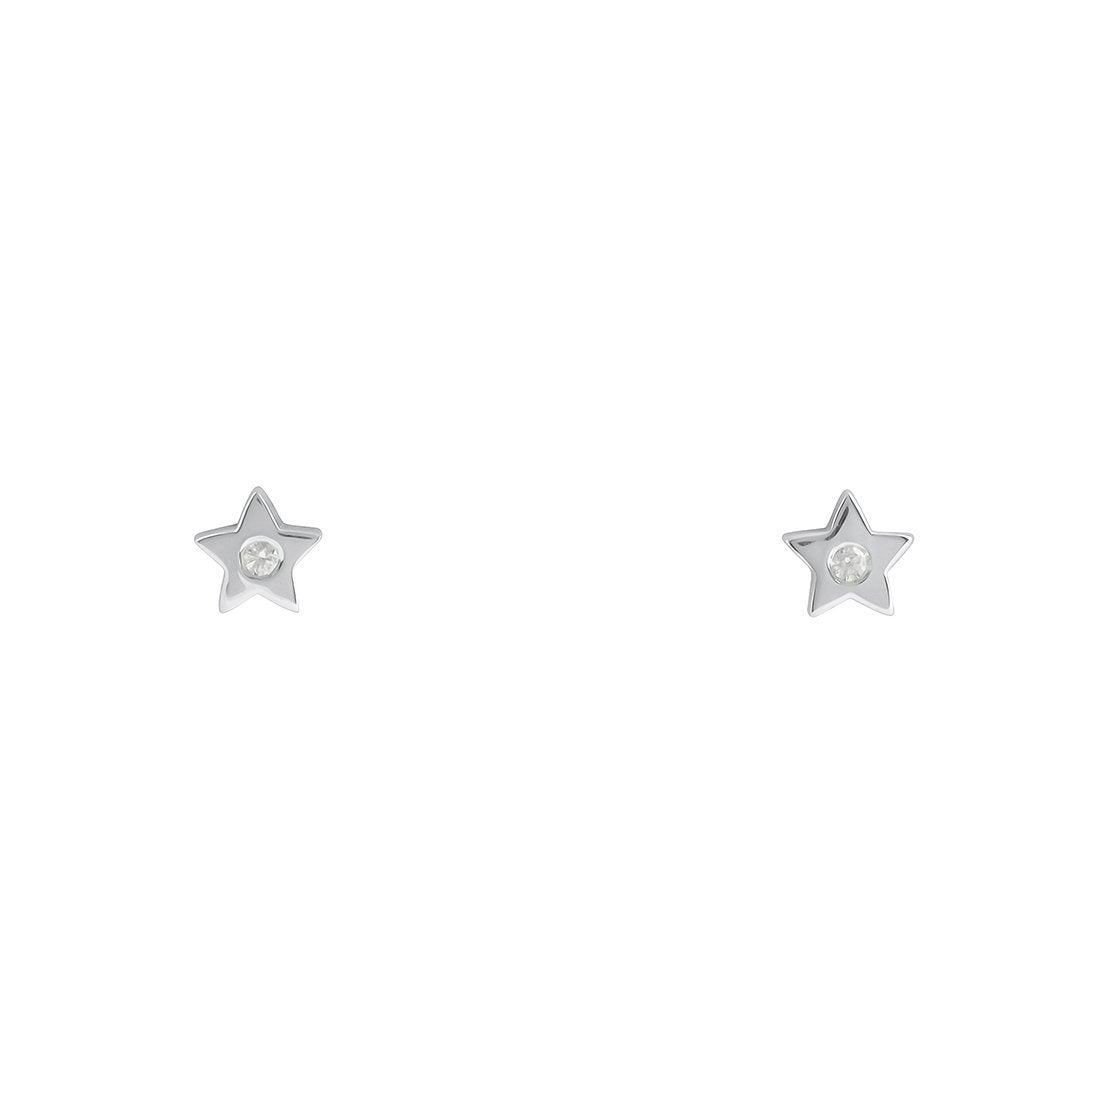 Midsummer Star Earrings FREE Sparkling Star Studs